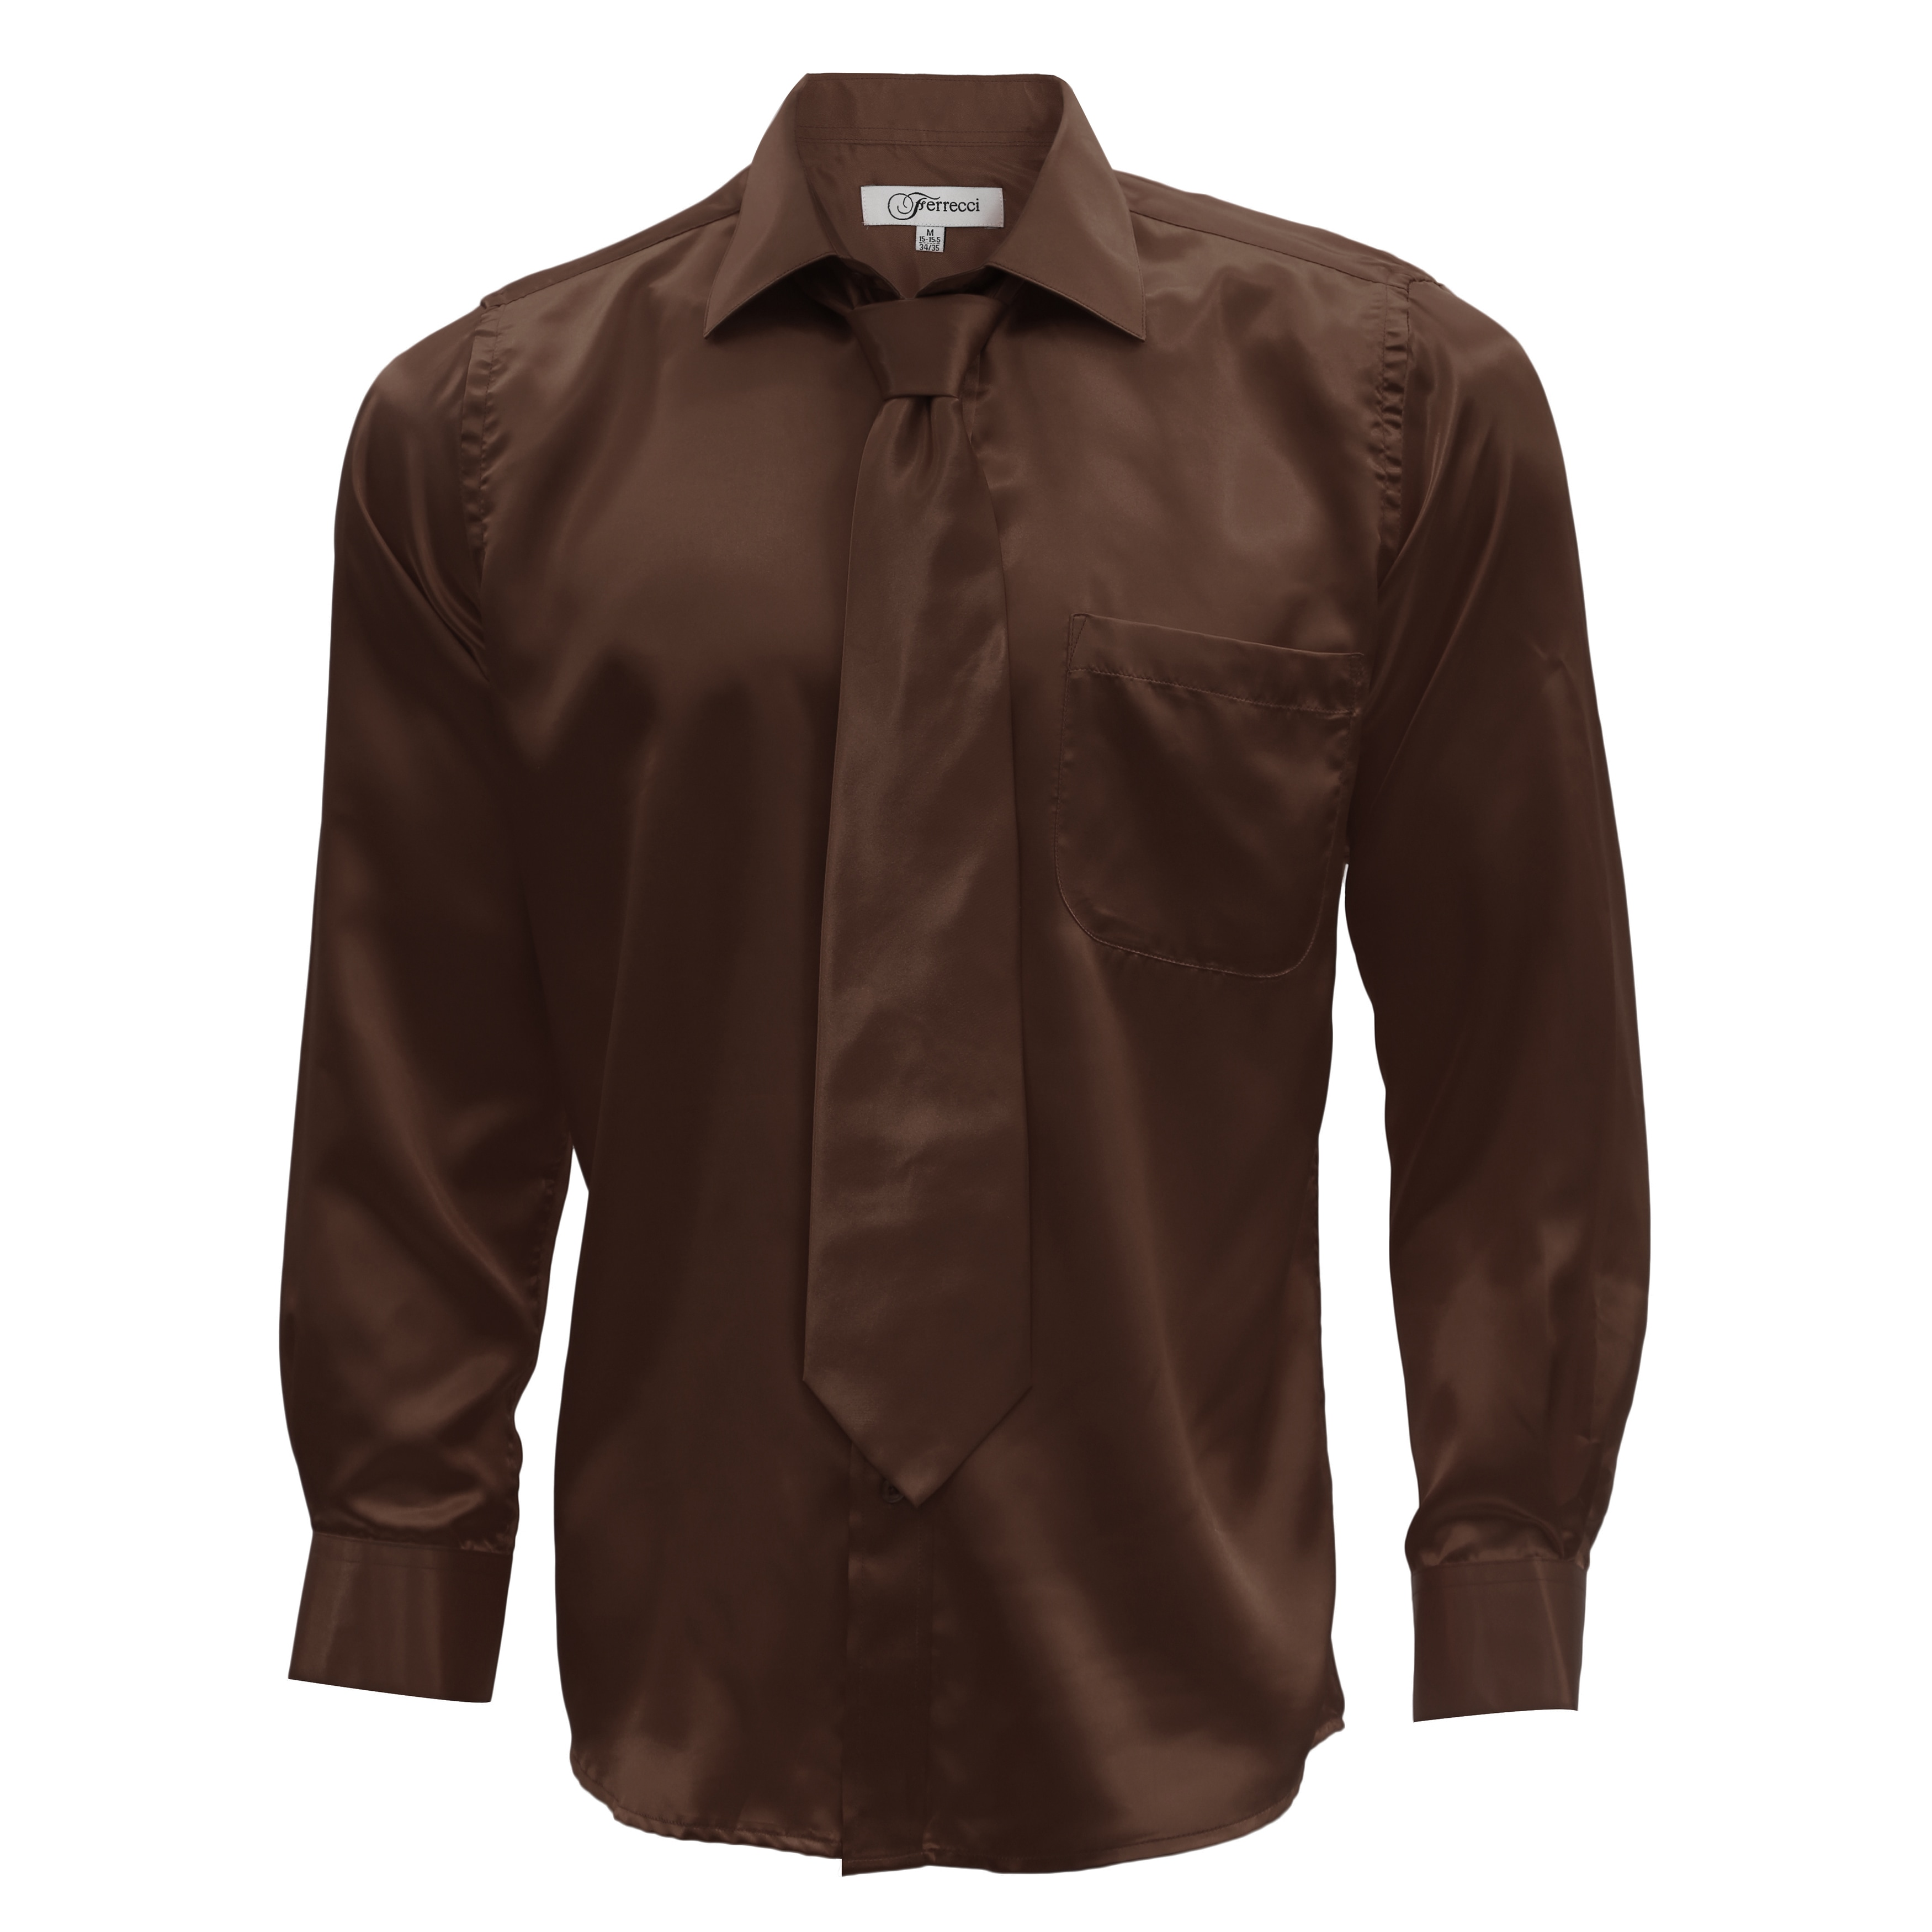 493a4483 Shop Ferrecci Men's Satin Dress Shirt, Necktie and Hanky Set - Free  Shipping On Orders Over $45 - Overstock - 12194708